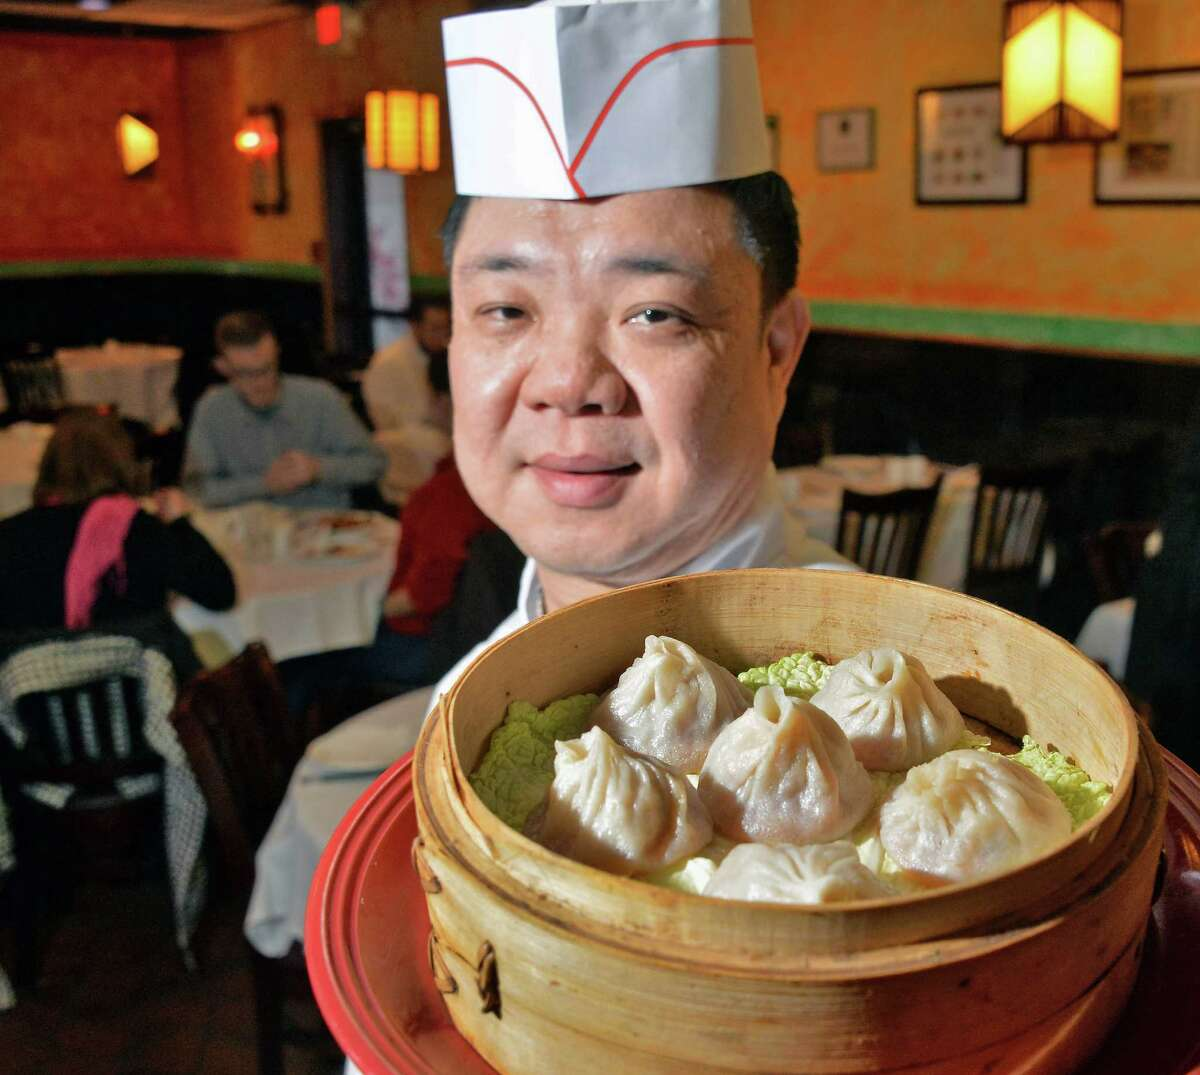 Head chef Qing Sheng Zhou with steamed pork soup dumplings at A la Shanghai Thursday Jan. 21, 2016 in Colonie, NY. (John Carl D'Annibale / Times Union)